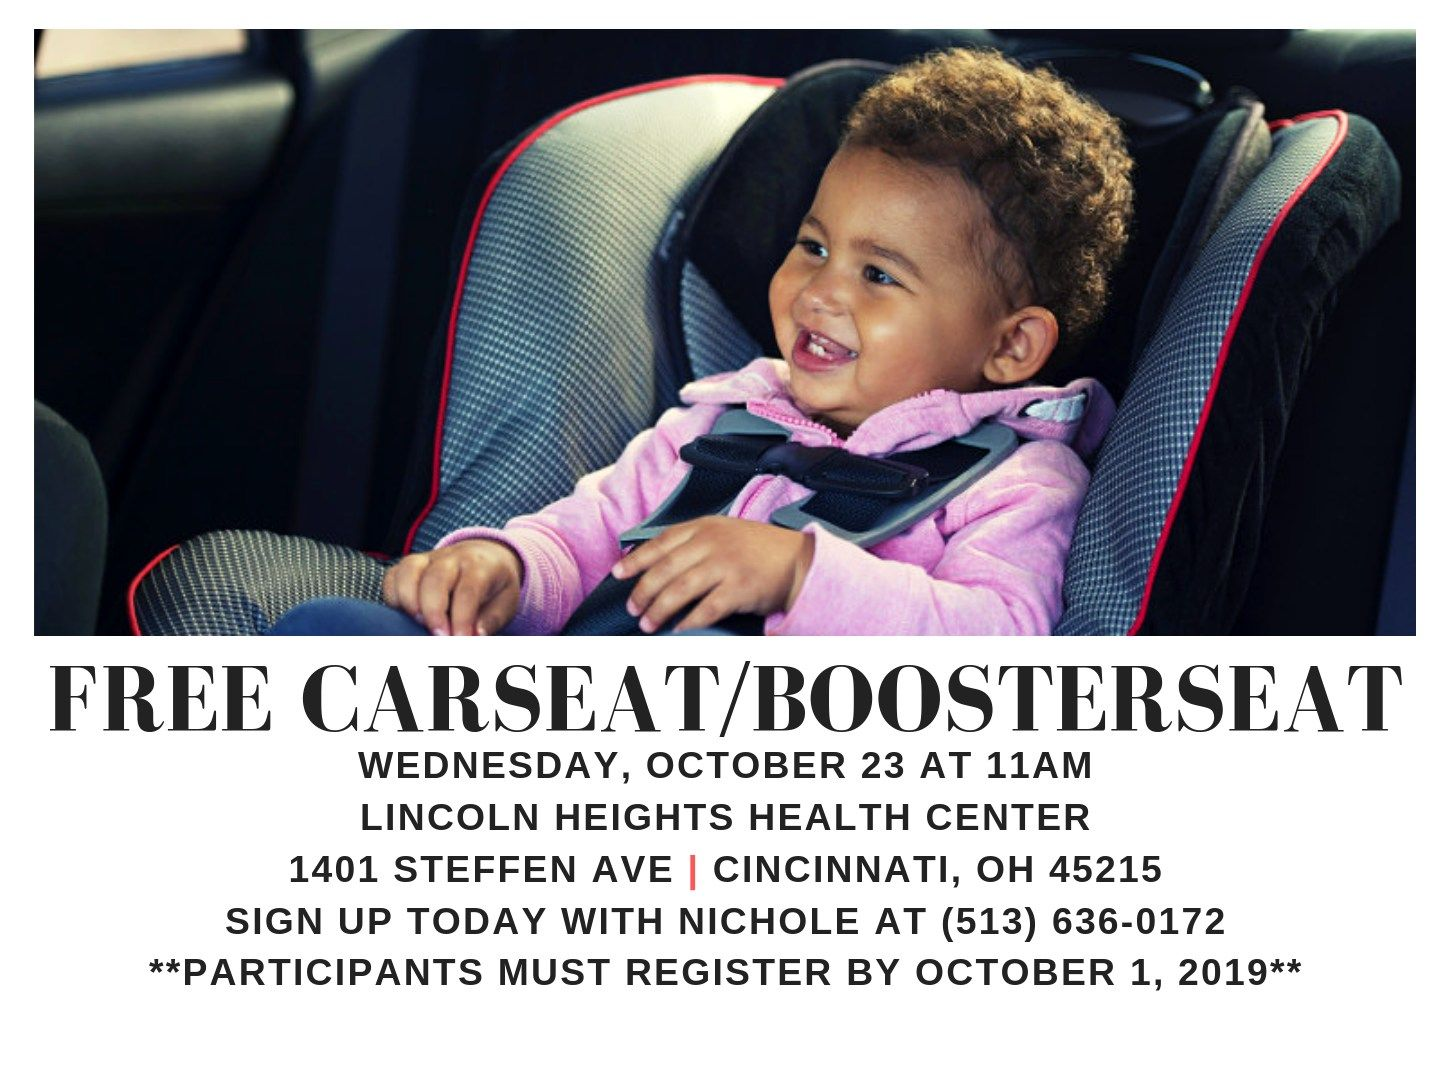 Get a Free Car Seat / Booster Seat!* (Register by October 1, 2019)